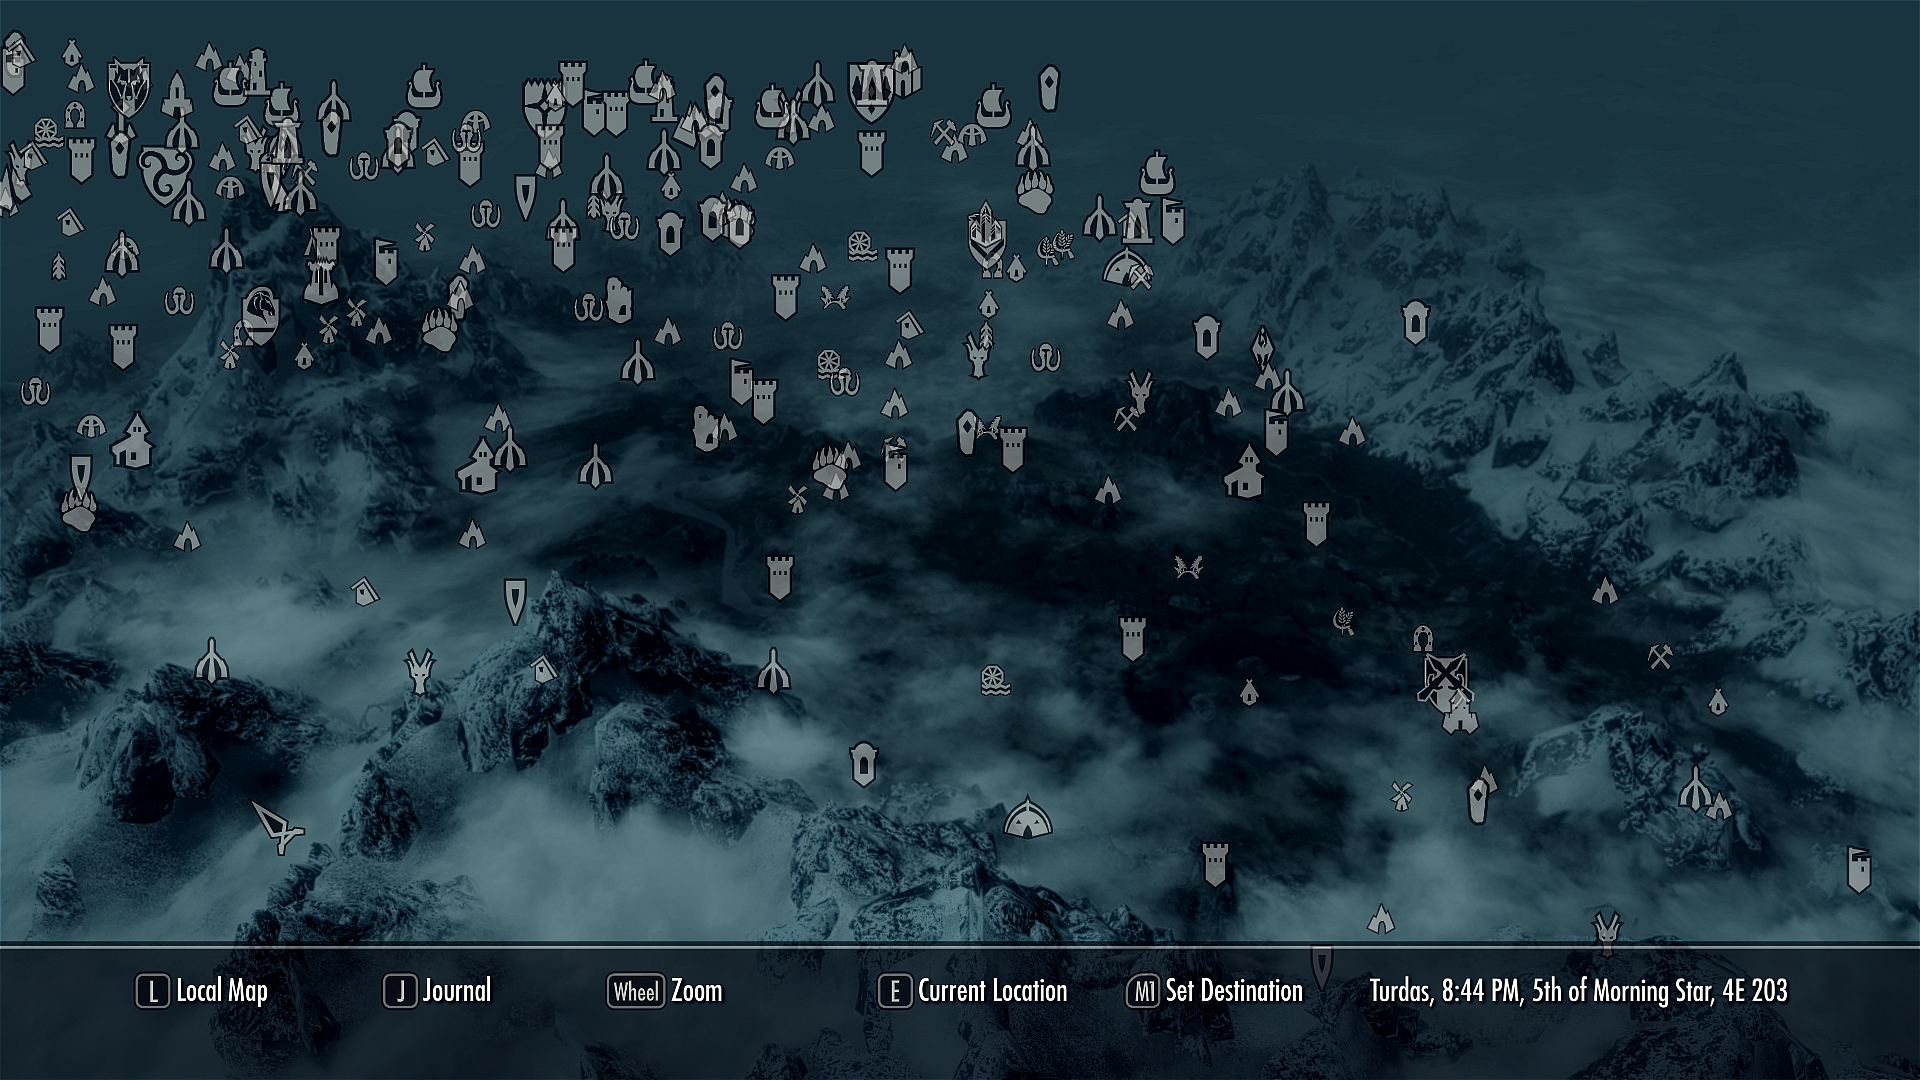 Skyrim Full Map Skyrim Map   Over 25 Different Maps of Skyrim to Map Out Your Journey